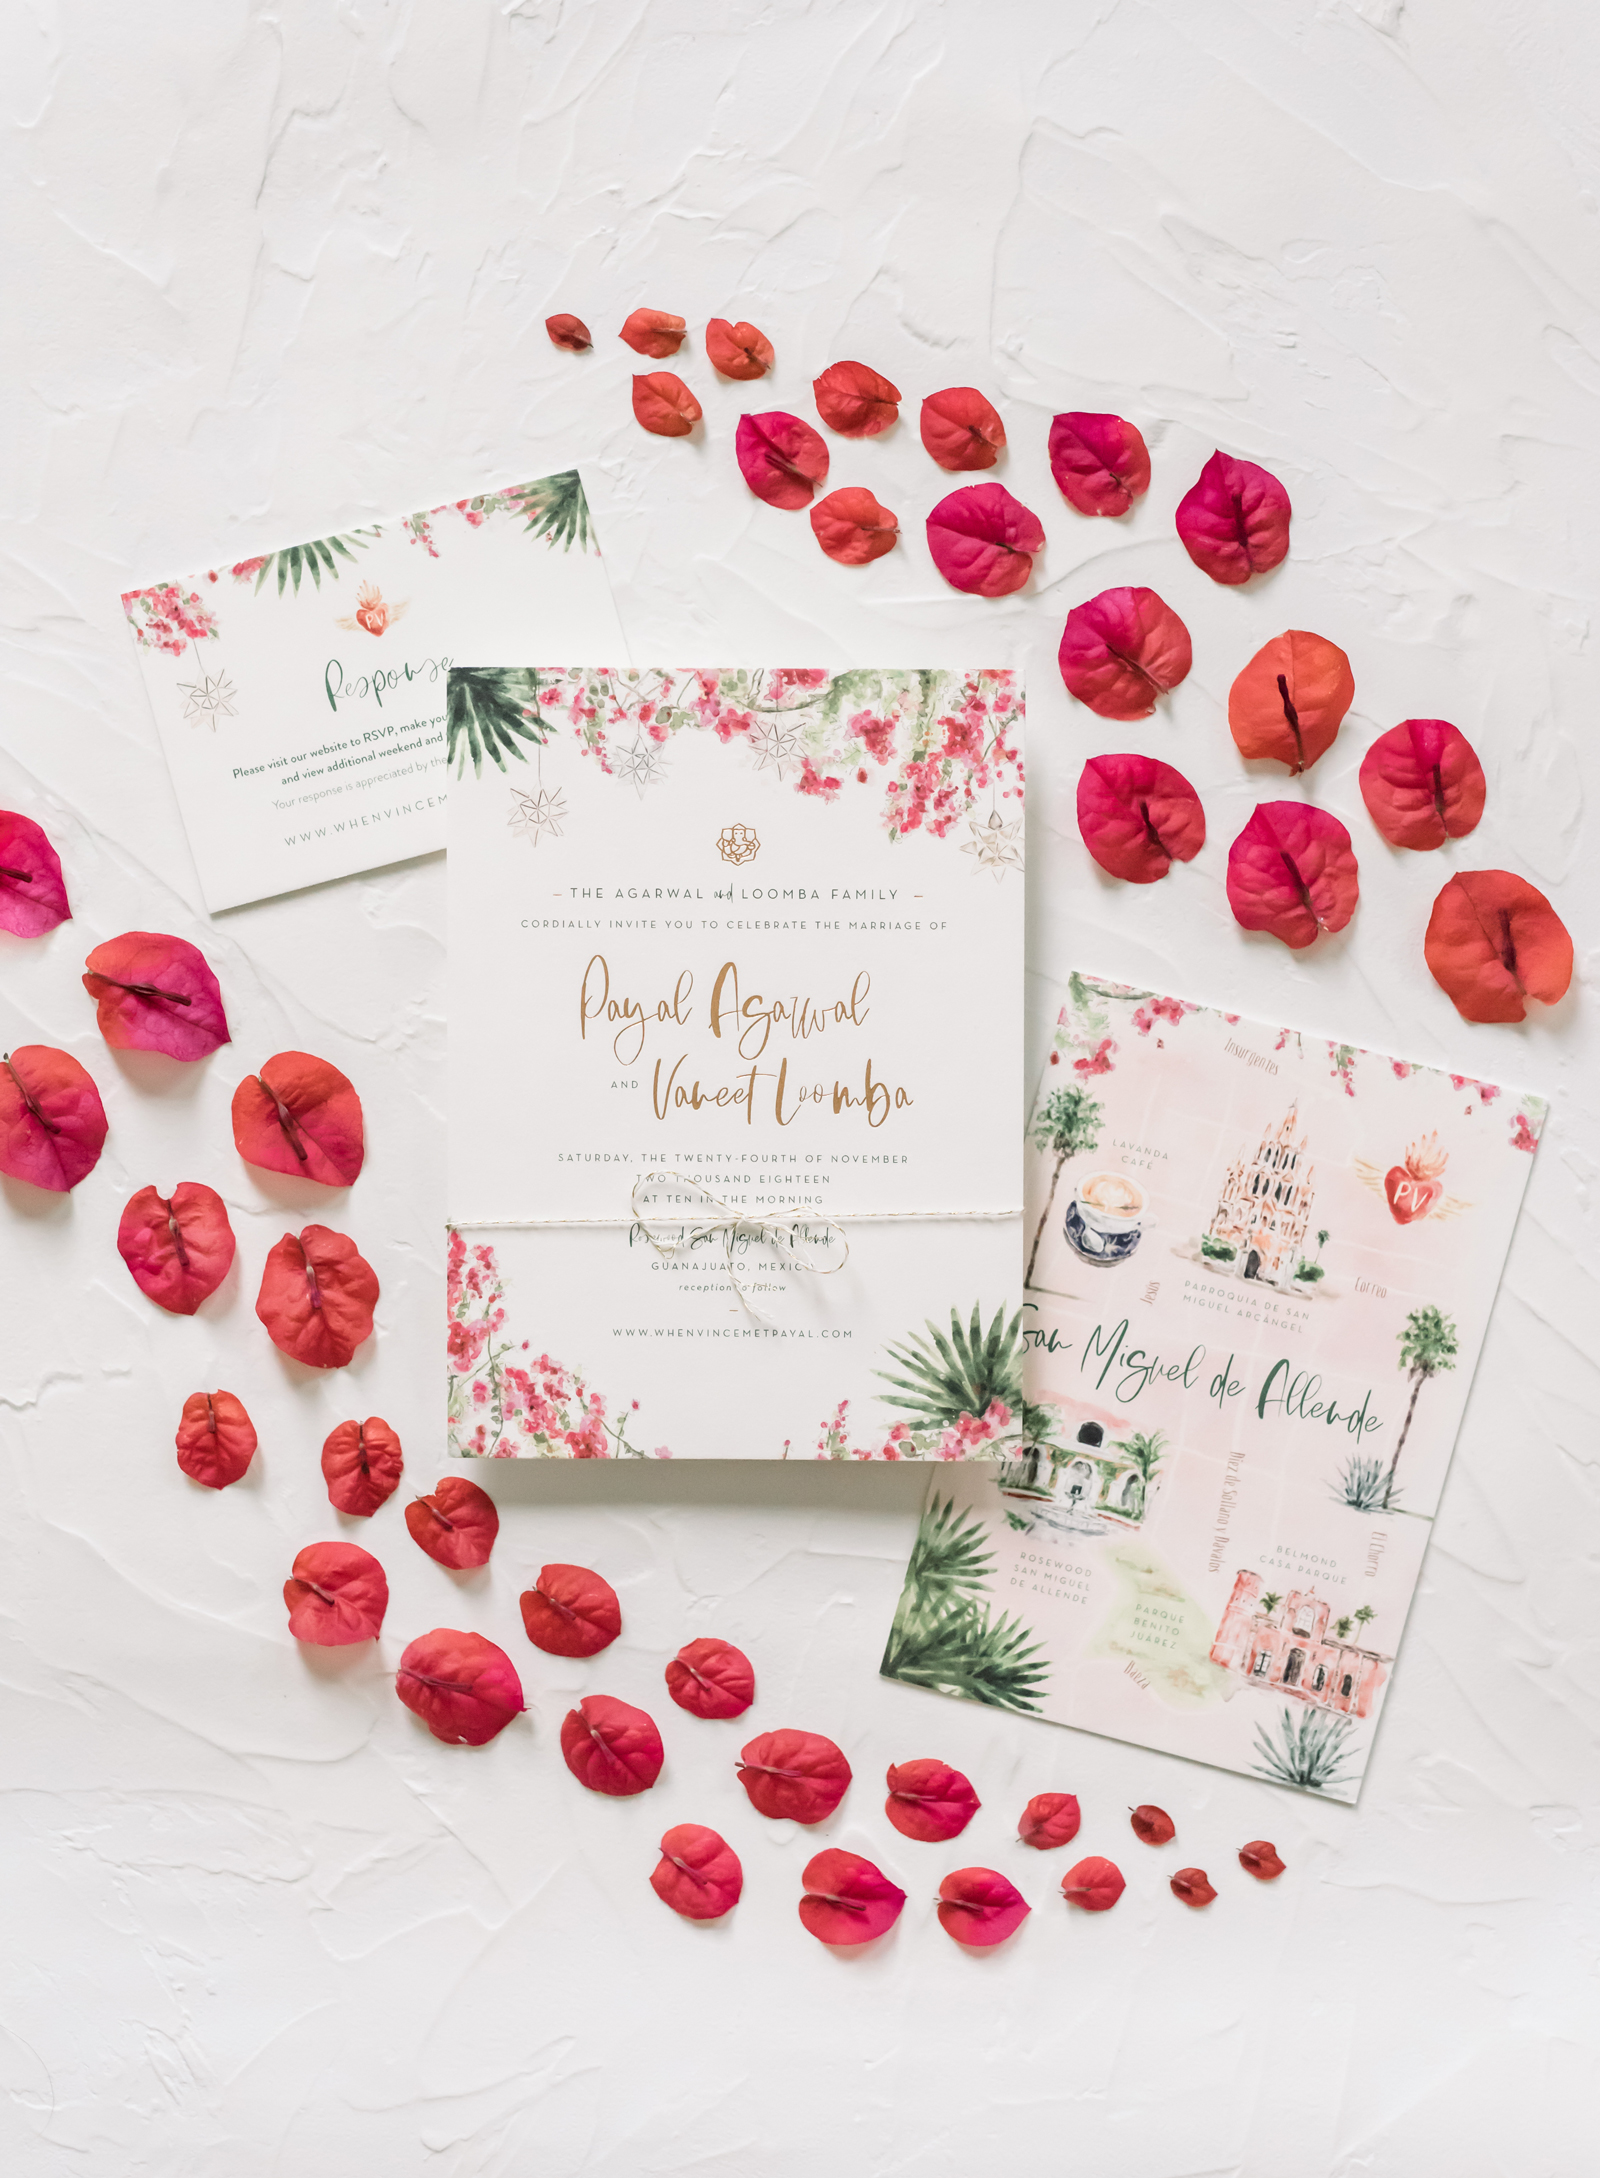 white stationary invitations with watercolor designs to match wedding theme